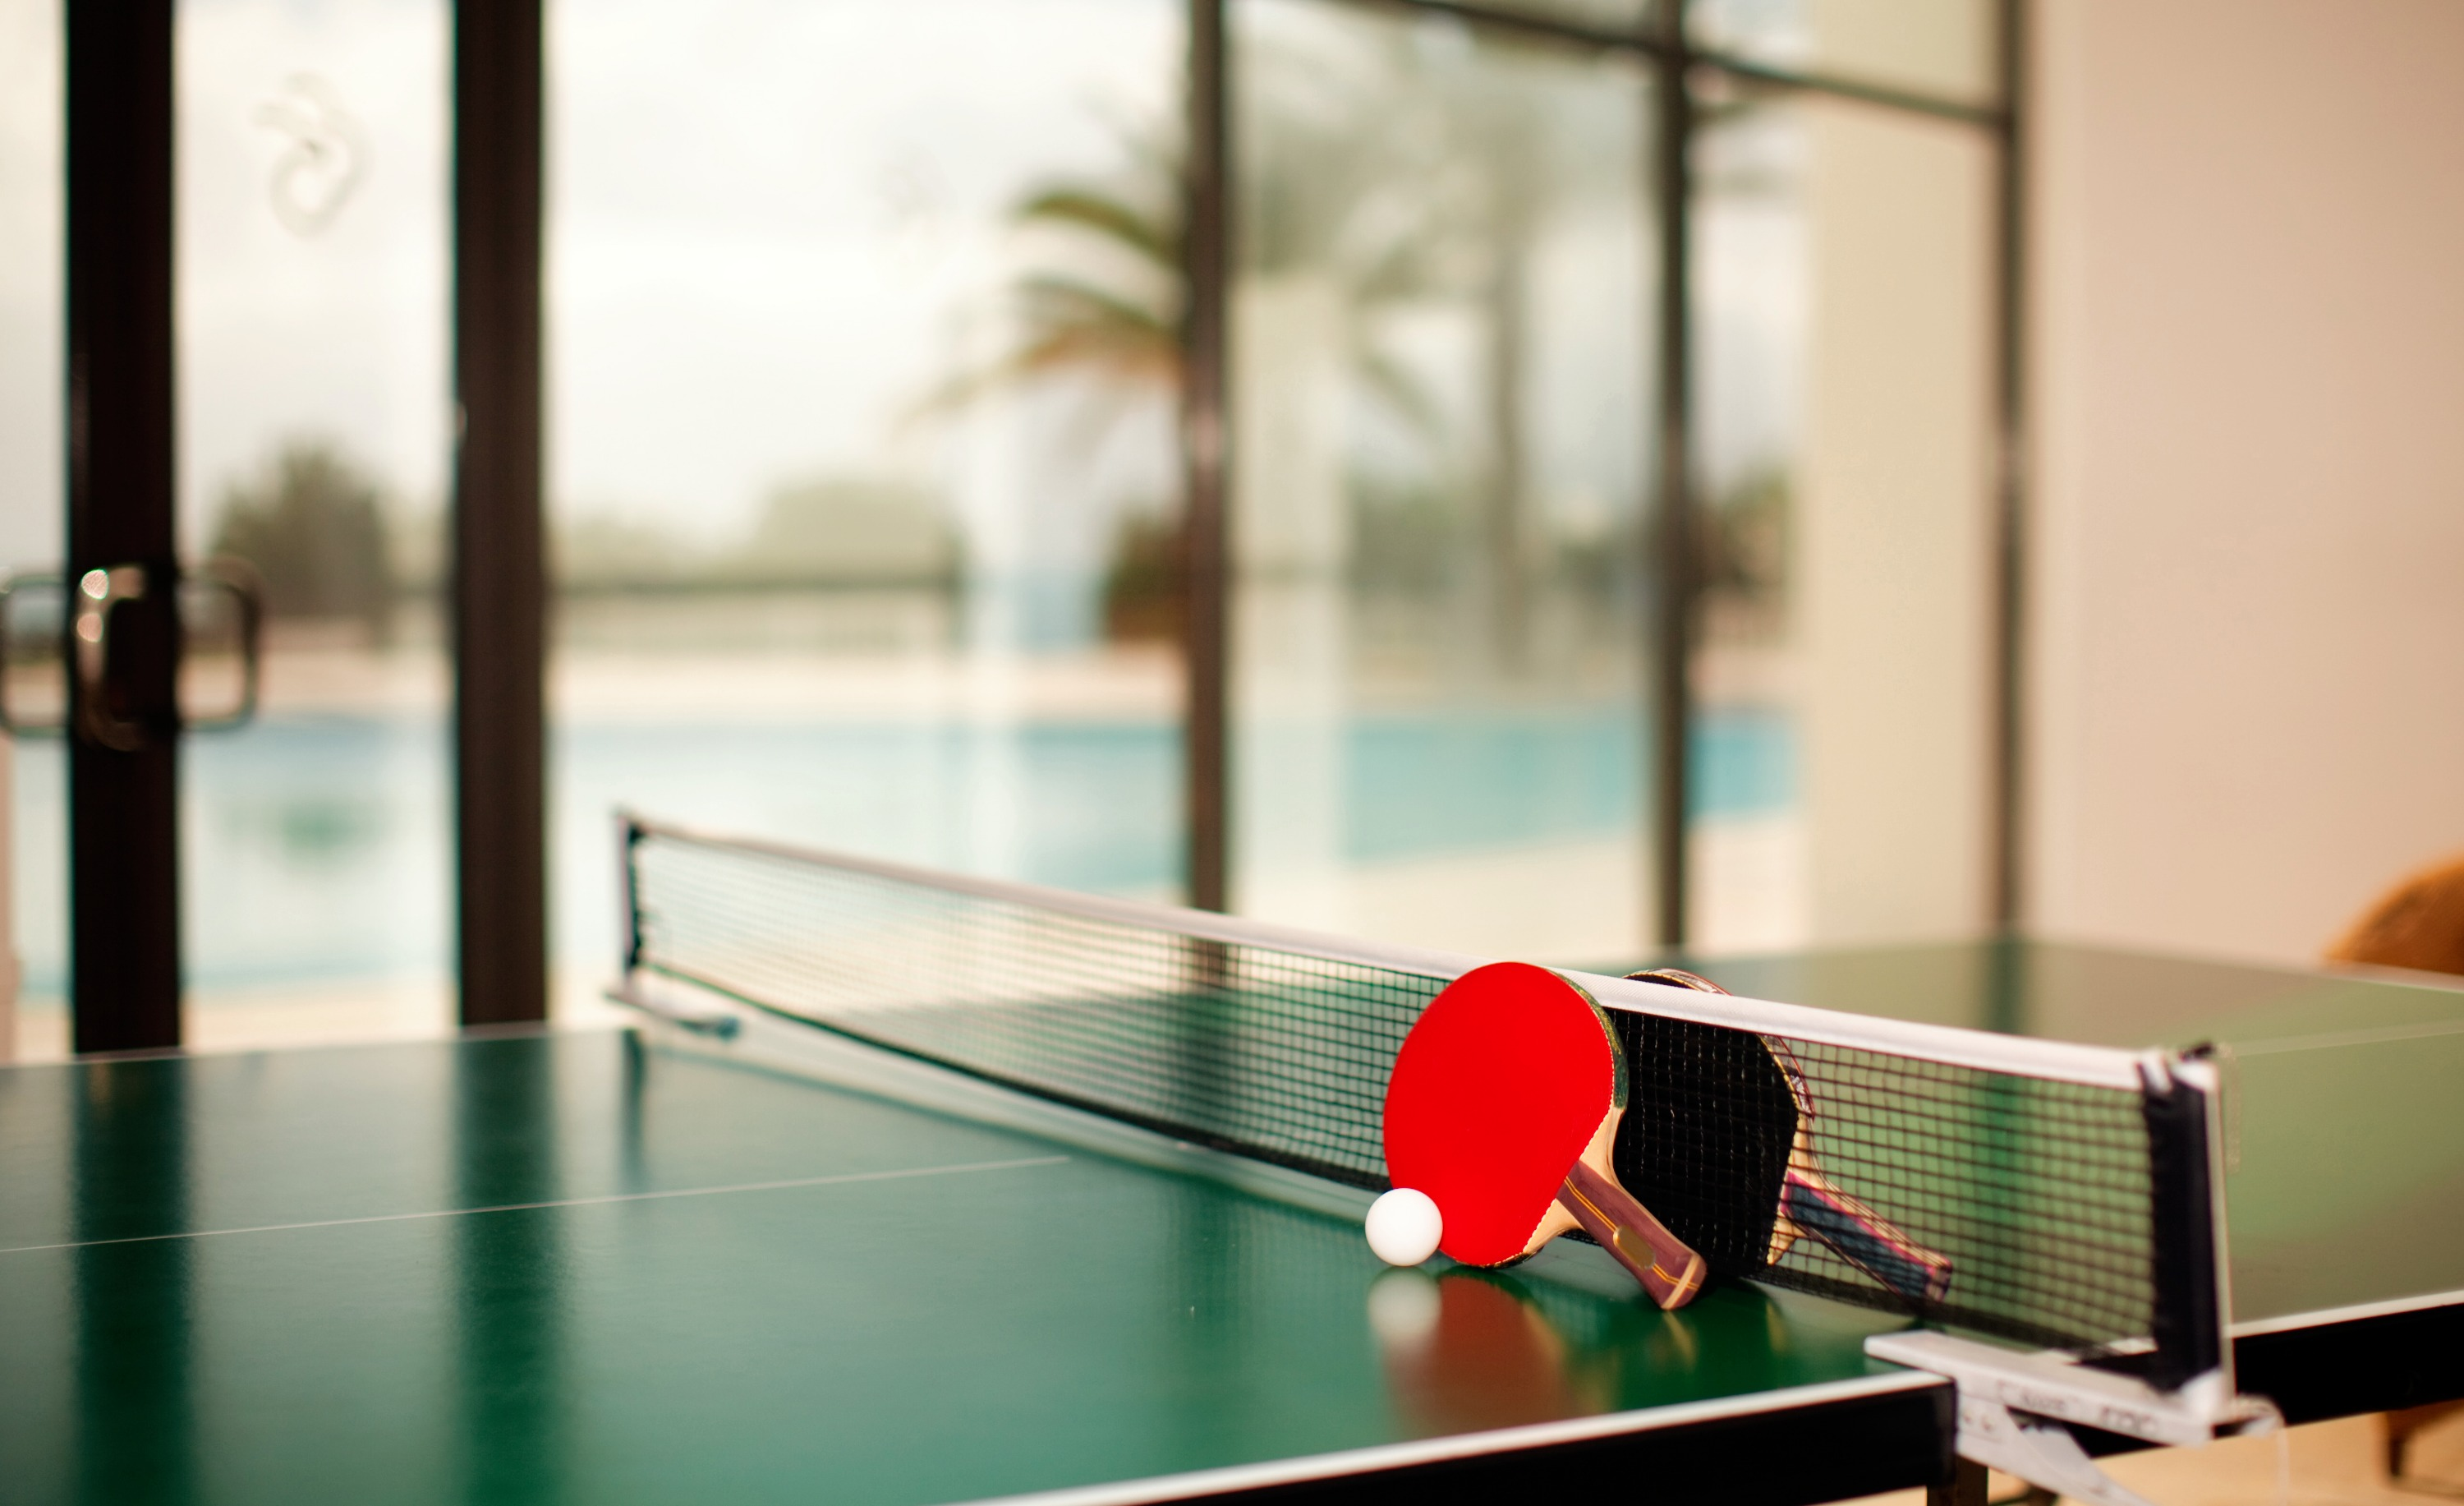 Ping Pong Table_edited.jpg